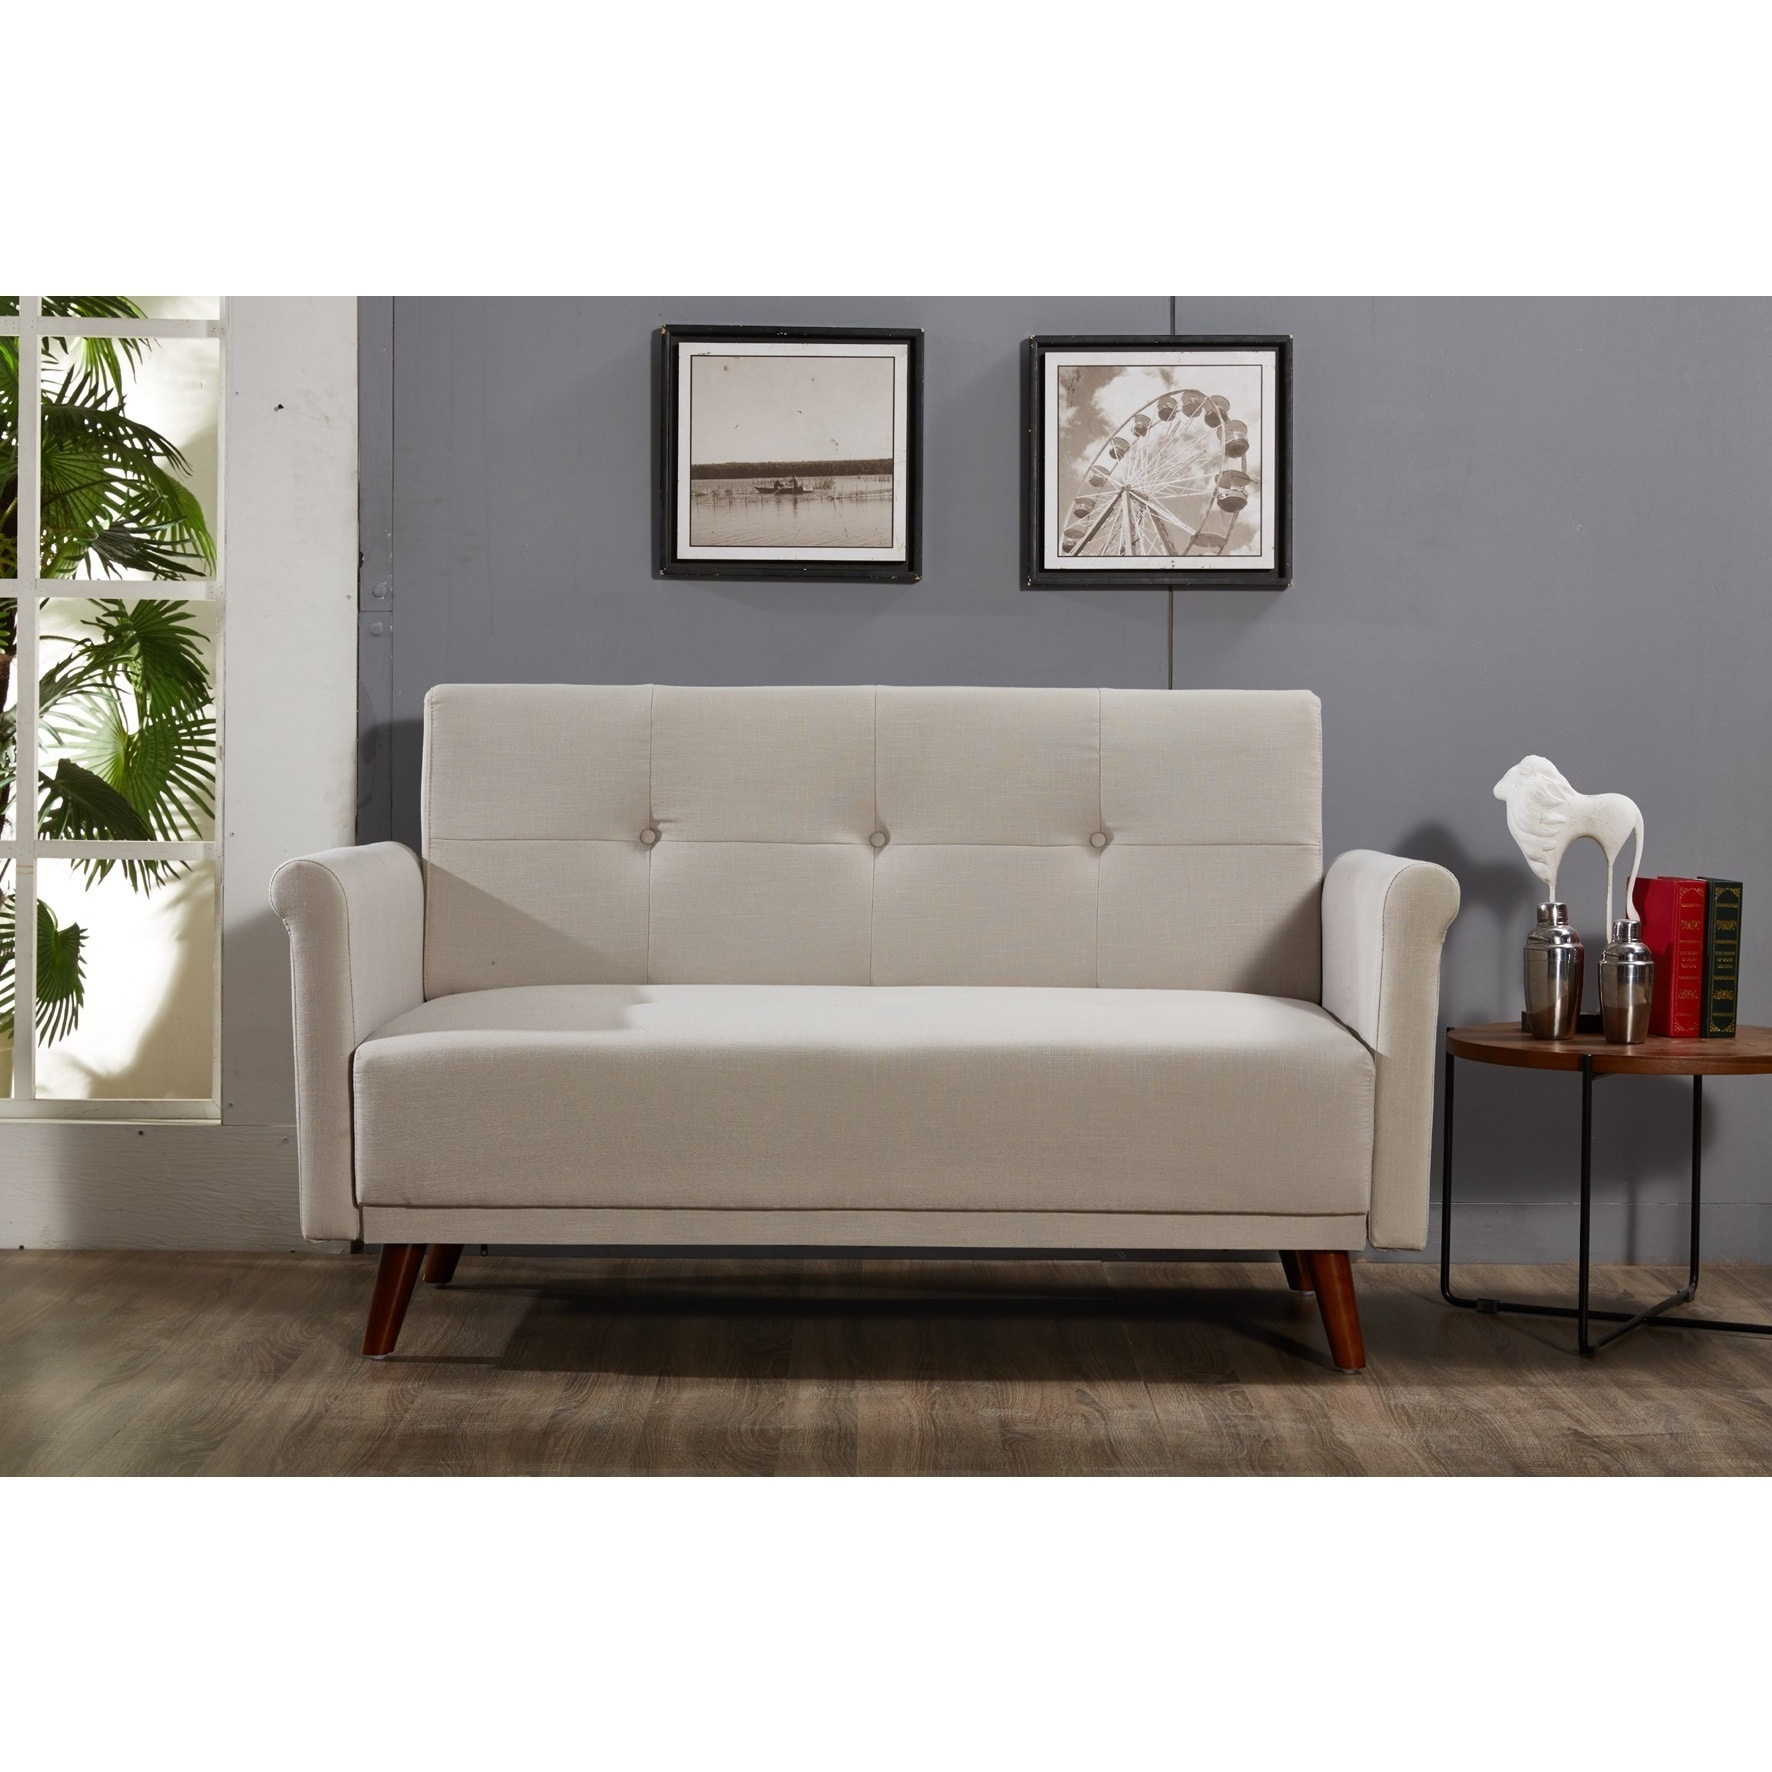 "US Pride Furniture Scully Modern Linen Fabric Button-tufted Upholstered Loveseat - 29""h x 60""w x 37.7""d"